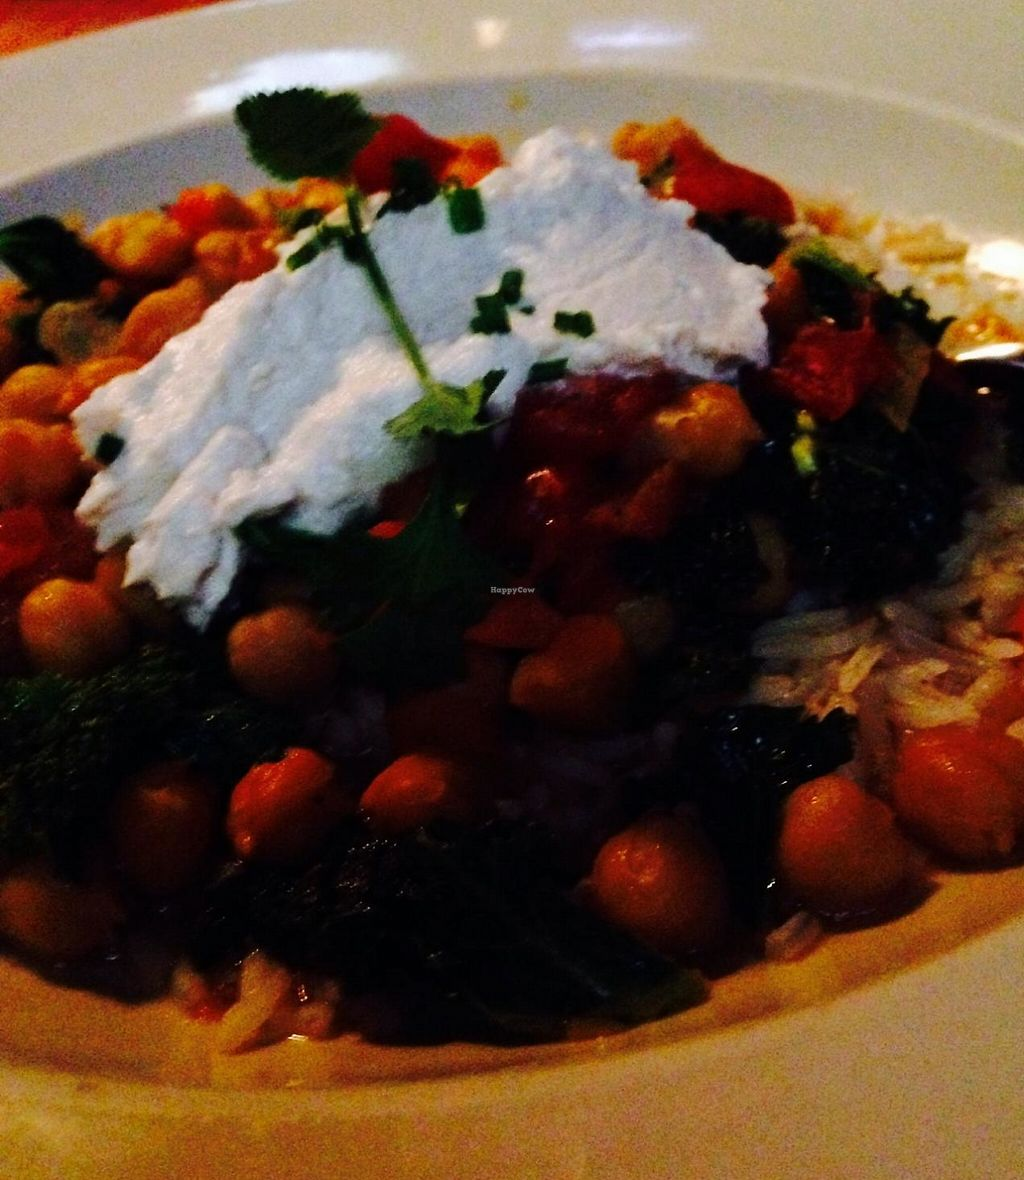 """Photo of Meridian Pint  by <a href=""""/members/profile/cookiem"""">cookiem</a> <br/>Chickpea and butternut squash vegan stew with basmati rice and vegan sour cream <br/> February 16, 2015  - <a href='/contact/abuse/image/55674/191811'>Report</a>"""